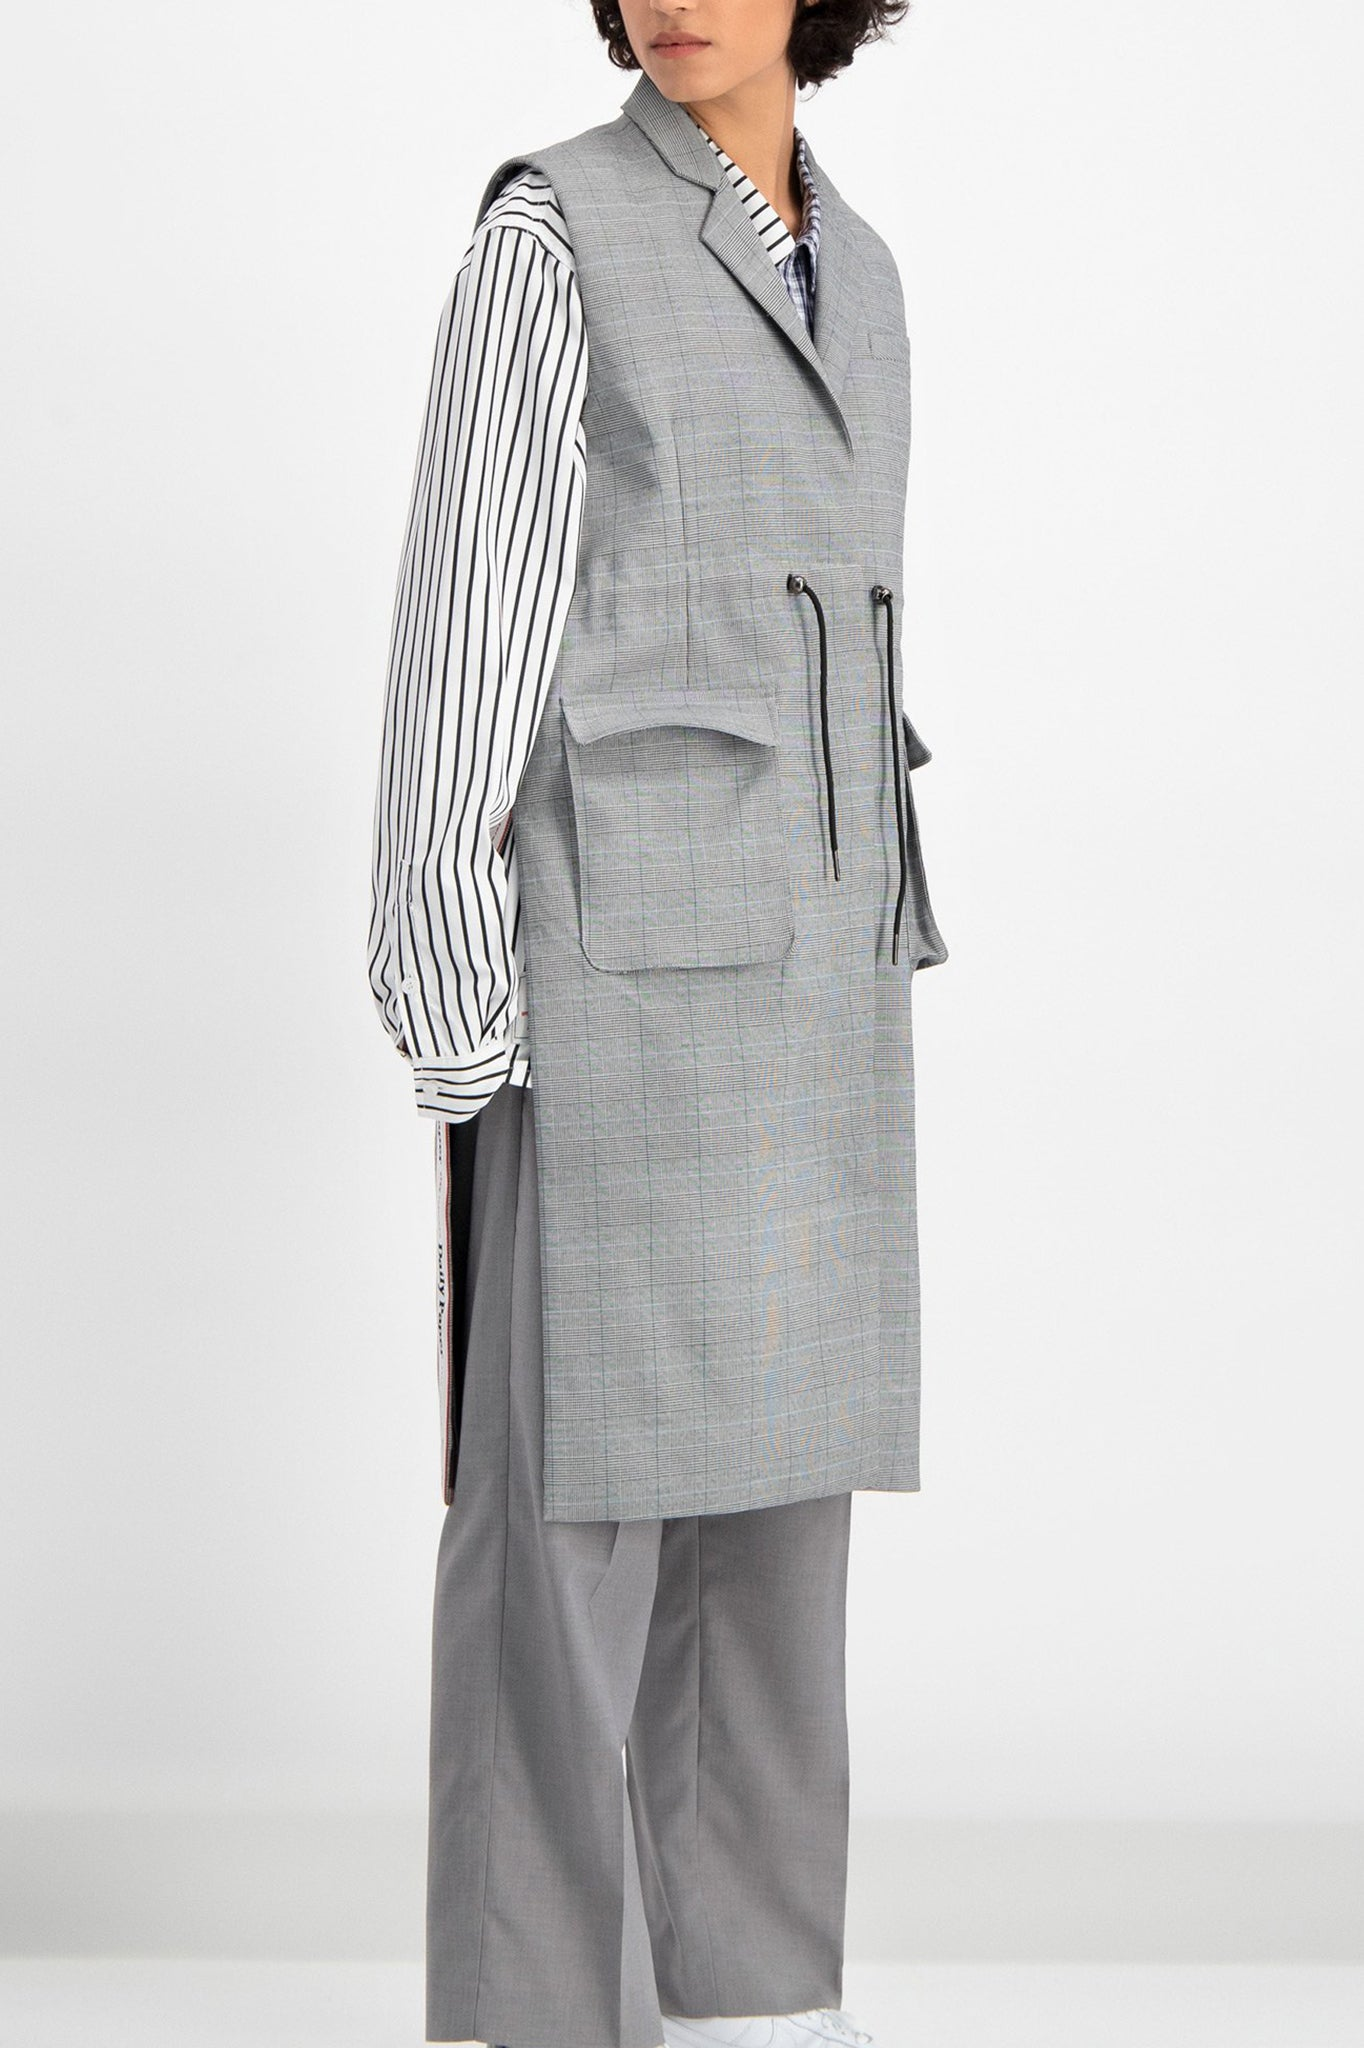 Daily Paper Grey Checkered Blazer Vest